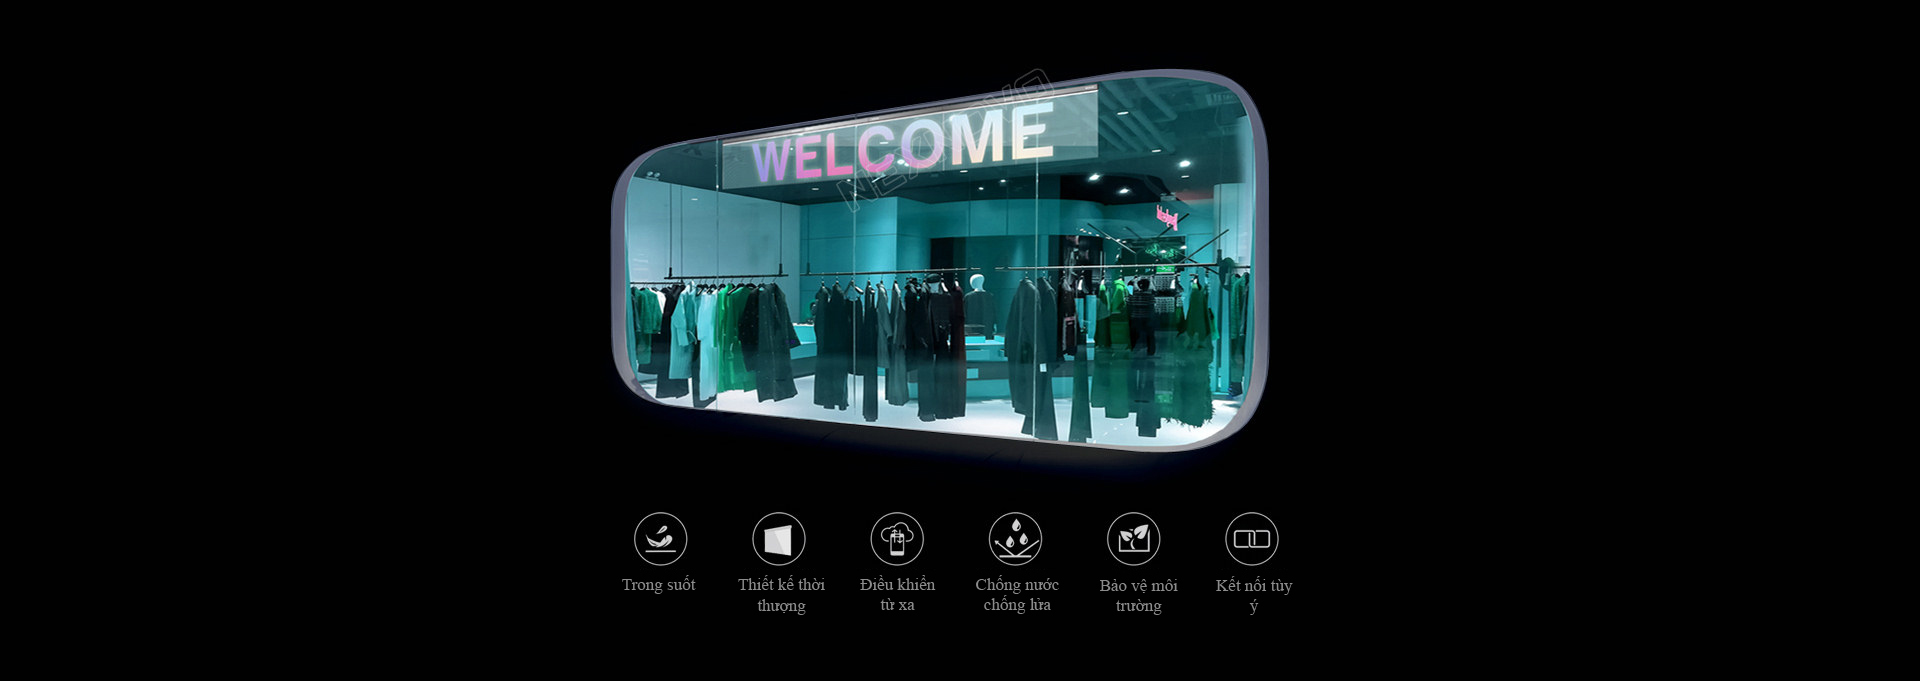 Nexesign smart glass led sign